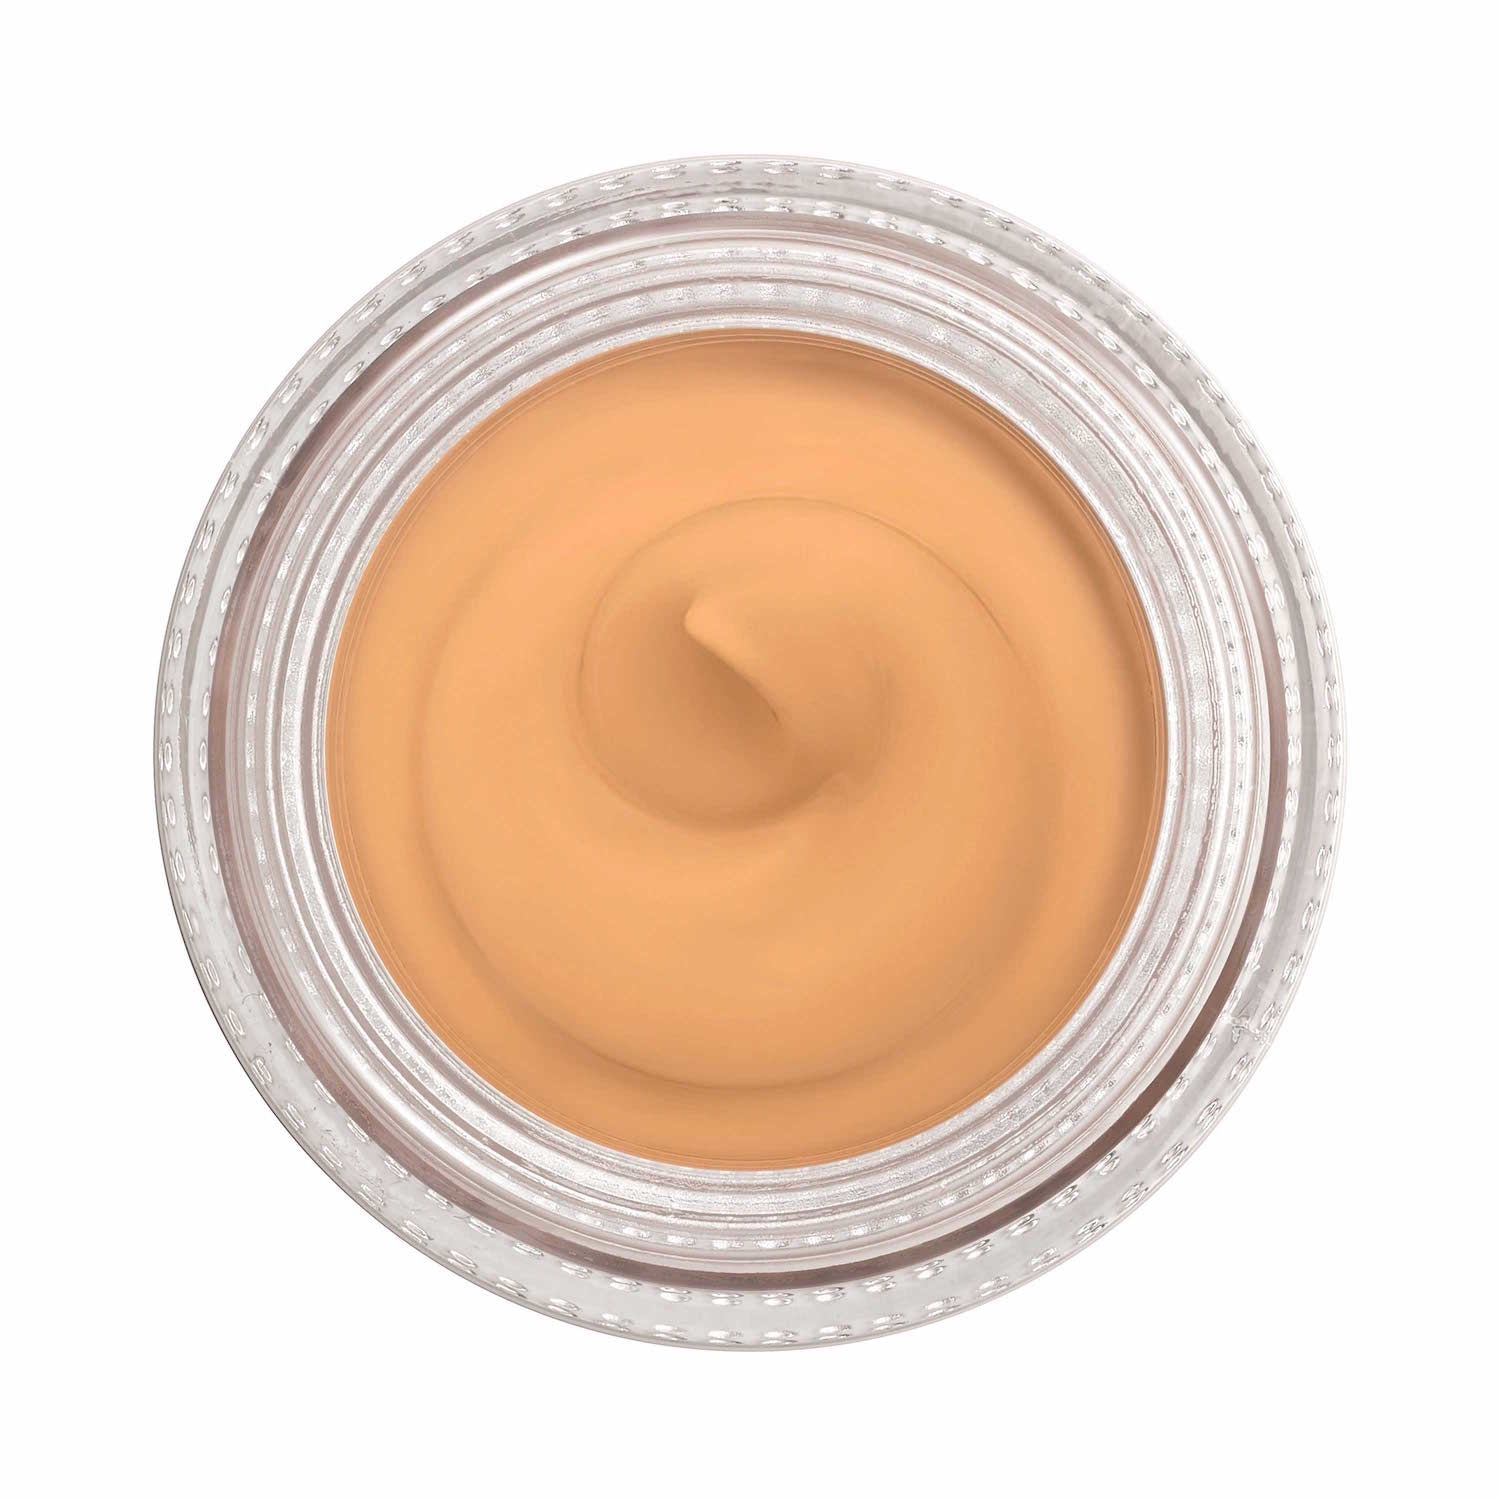 PEACH PERFECT INSTANT COVERAGE CONCEALER (CORRECTOR)